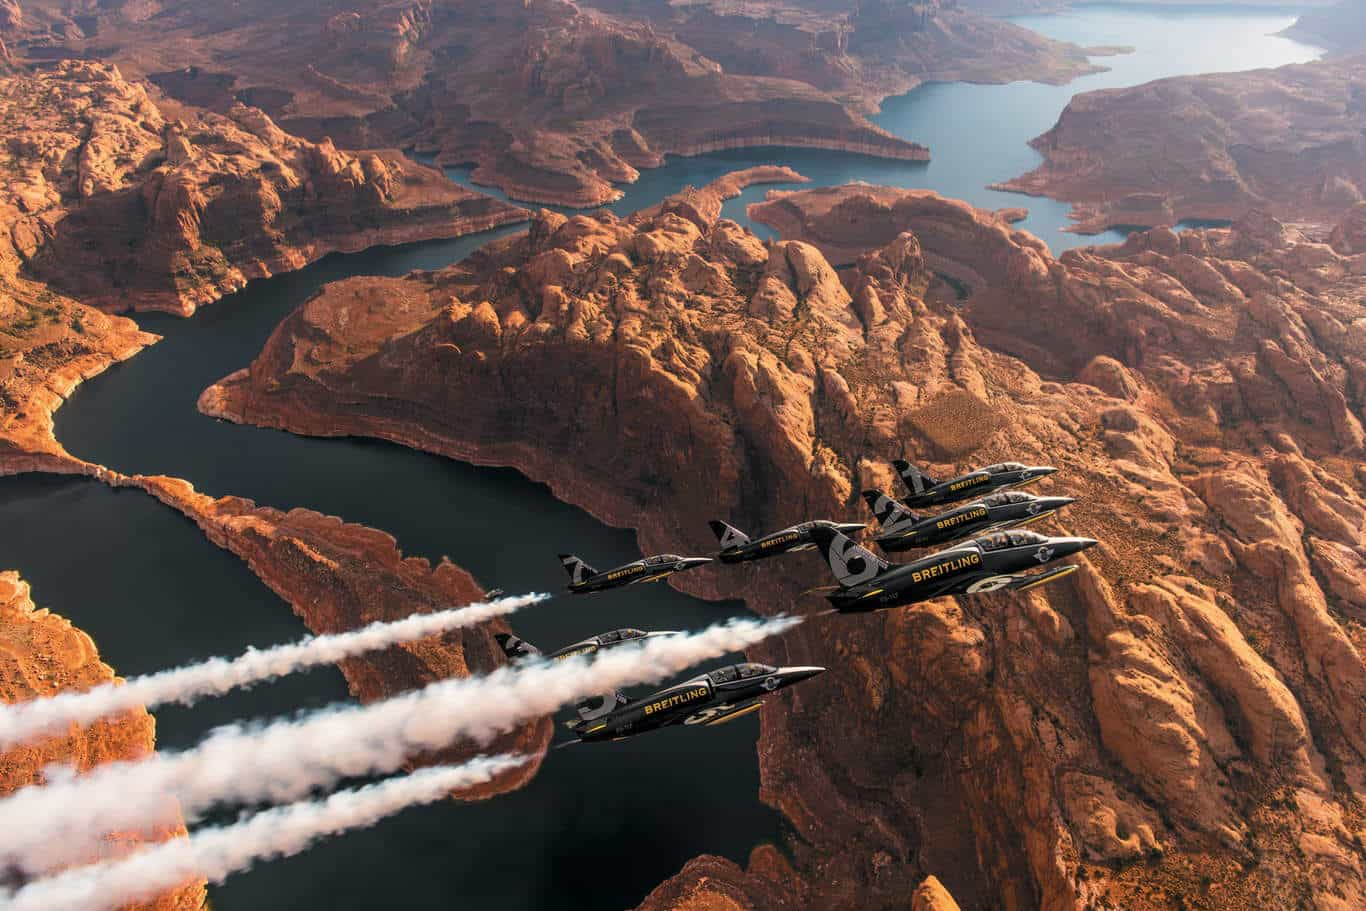 Breitling Jet Team Grand canyon